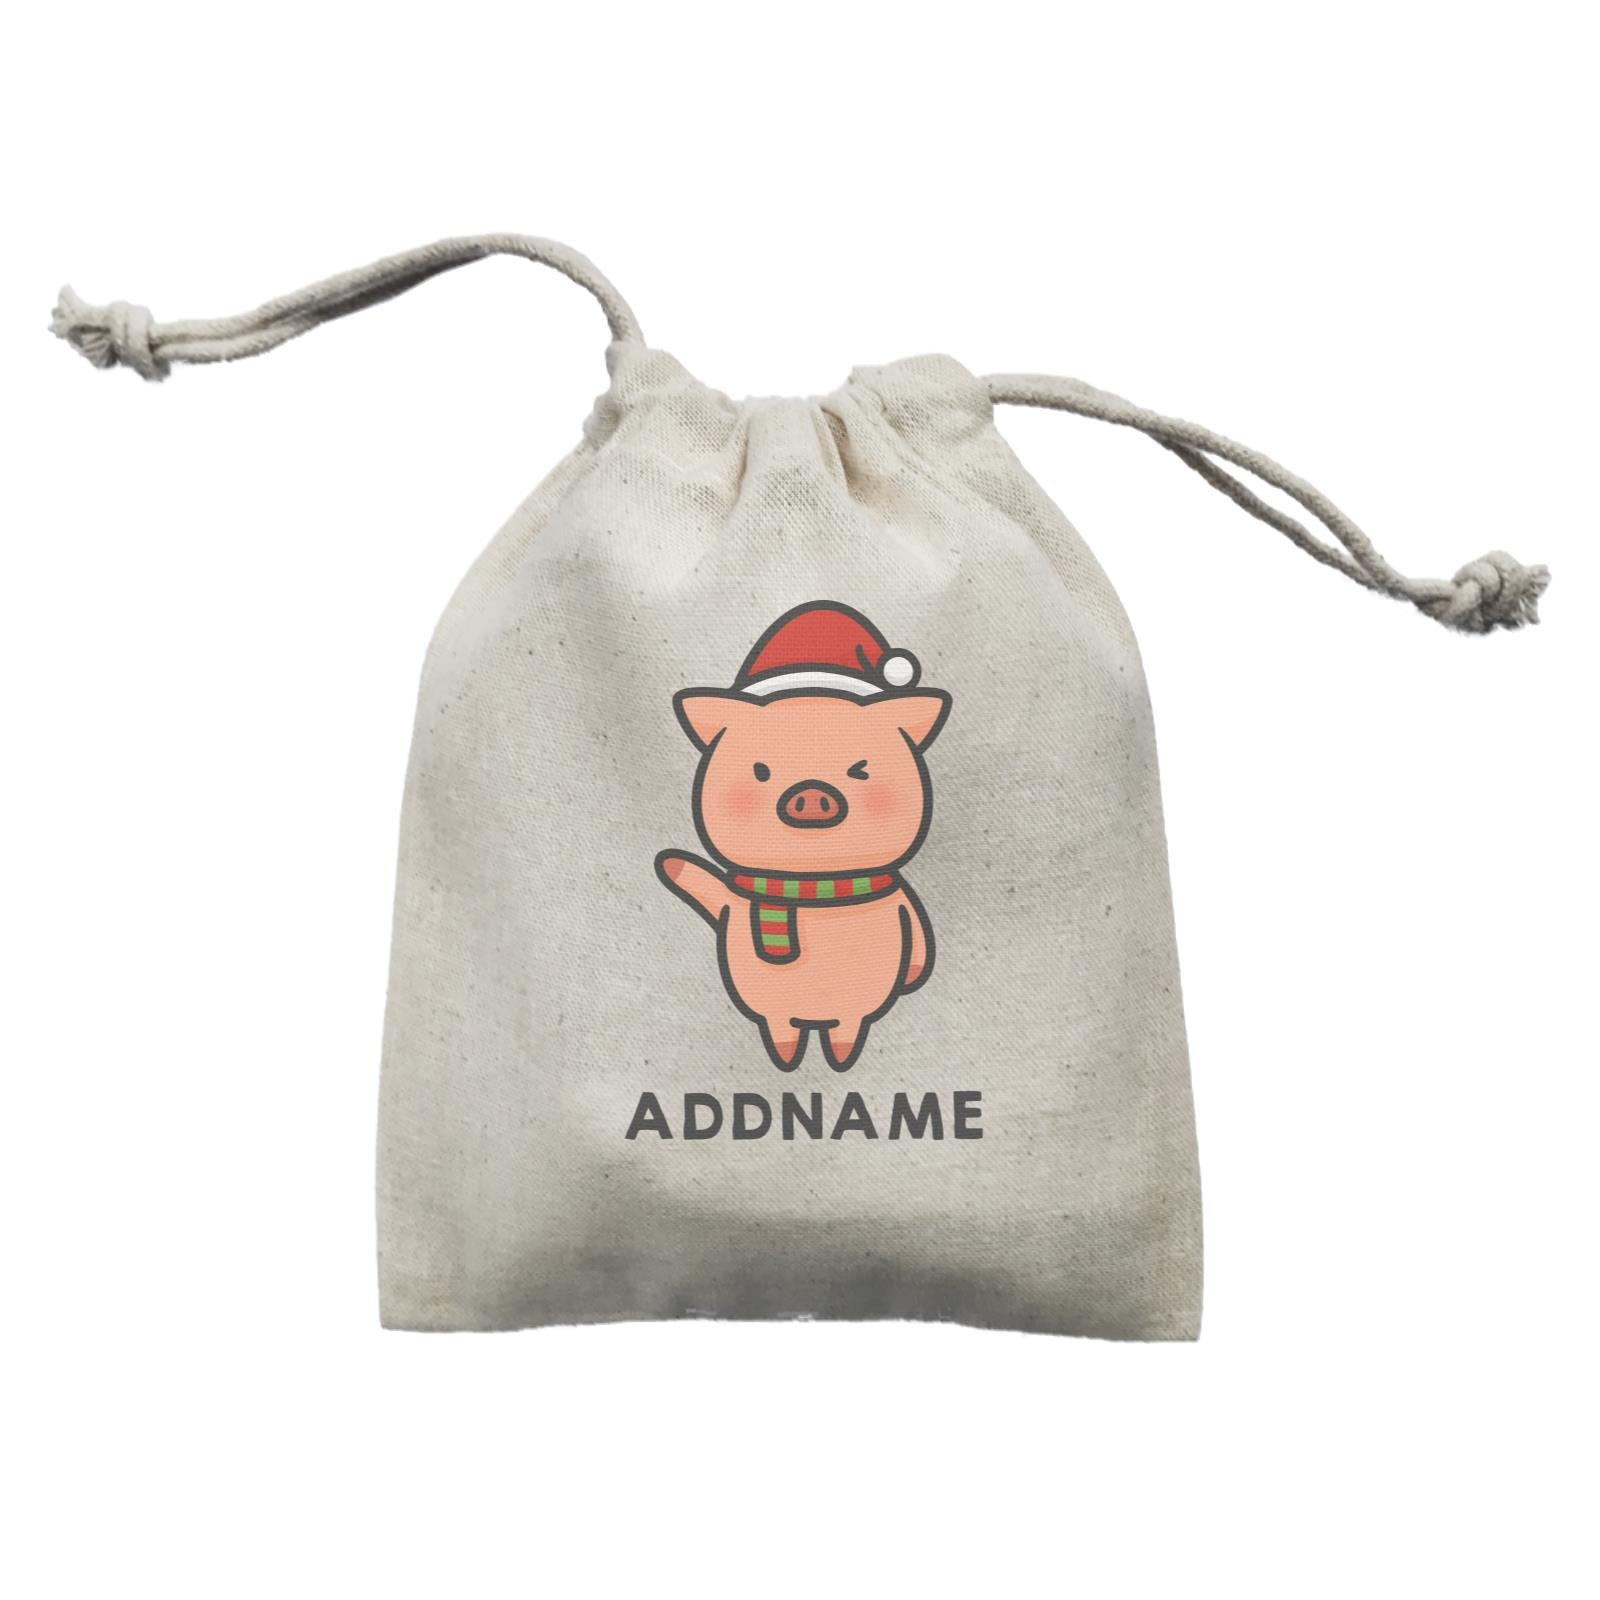 Xmas Cute Pig Christmas Hat Addname Mini Accessories Mini Pouch